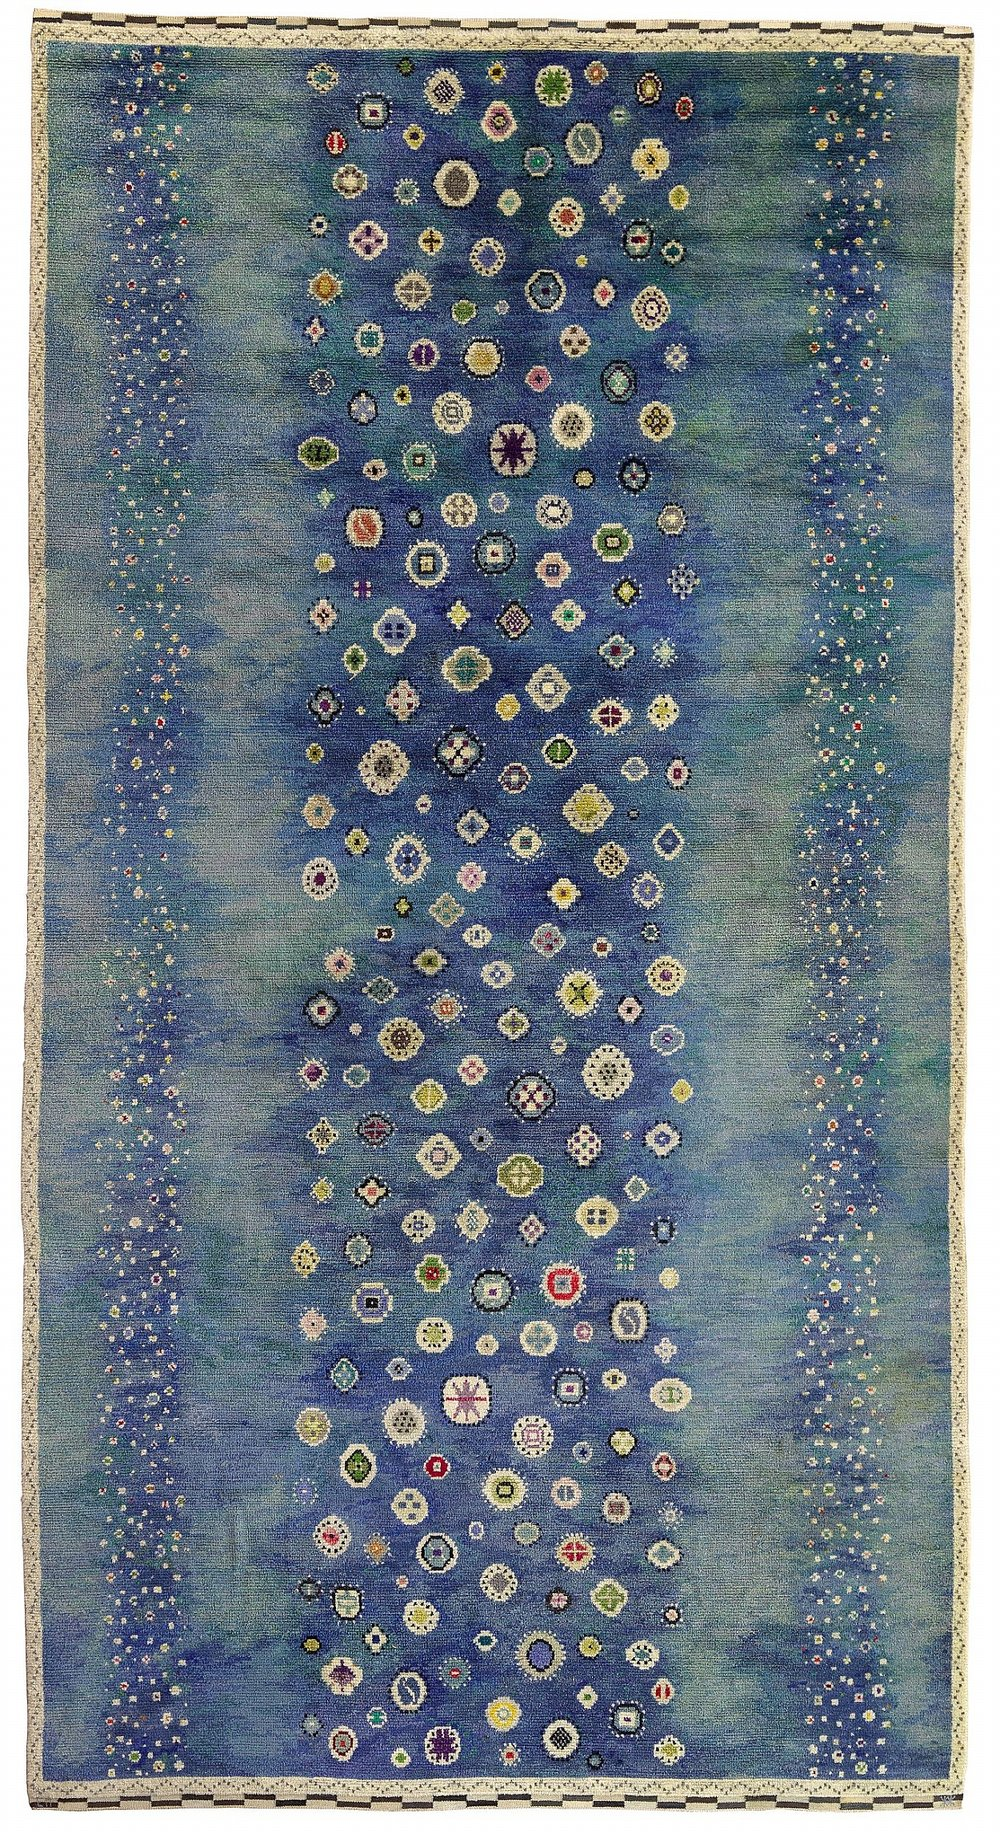 1949 Vintergarten Rug sold recently for £24,000.